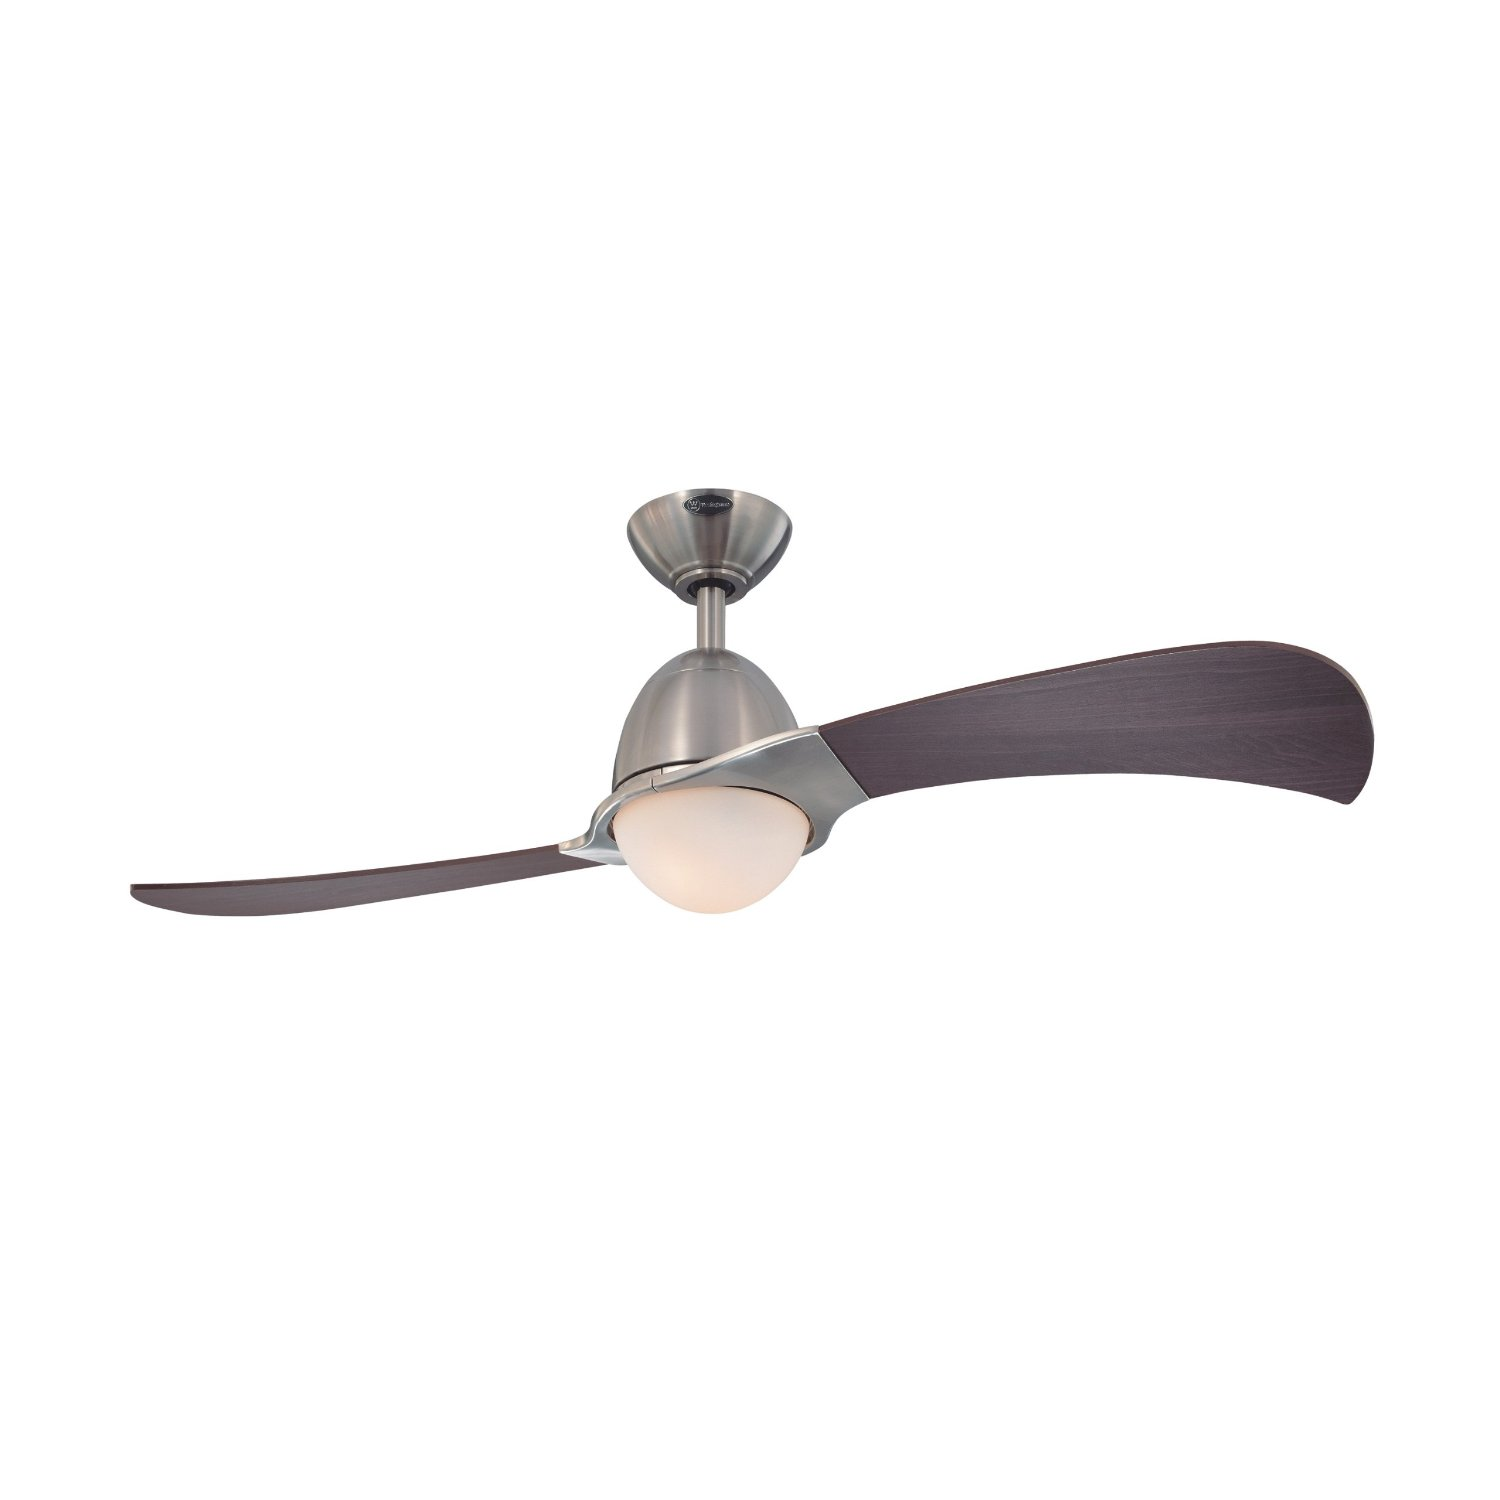 company oscillating fan oscilating in outdoor fans atlas ceiling ane single dual